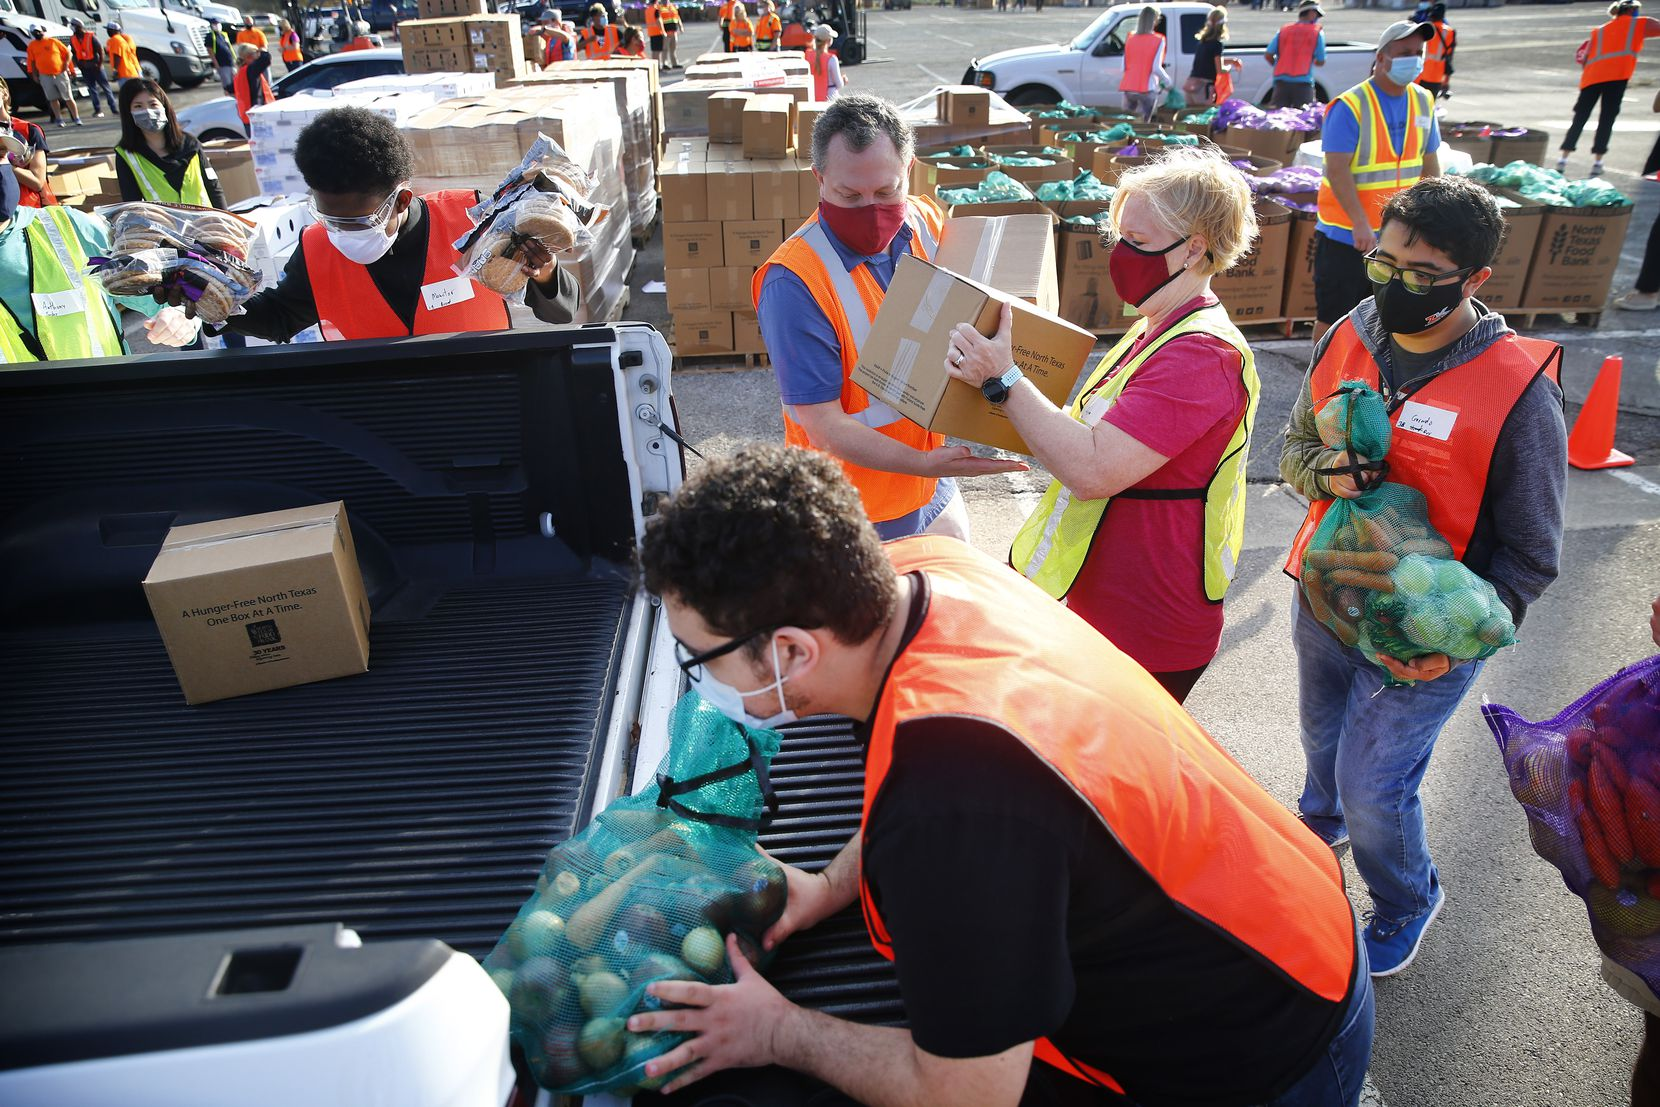 Volunteers loaded up turkeys, fresh produce, bread and non-perishables into families' vehicles during Saturday's distribution at Fair Park. The selection of food was geared toward Thanksgiving.